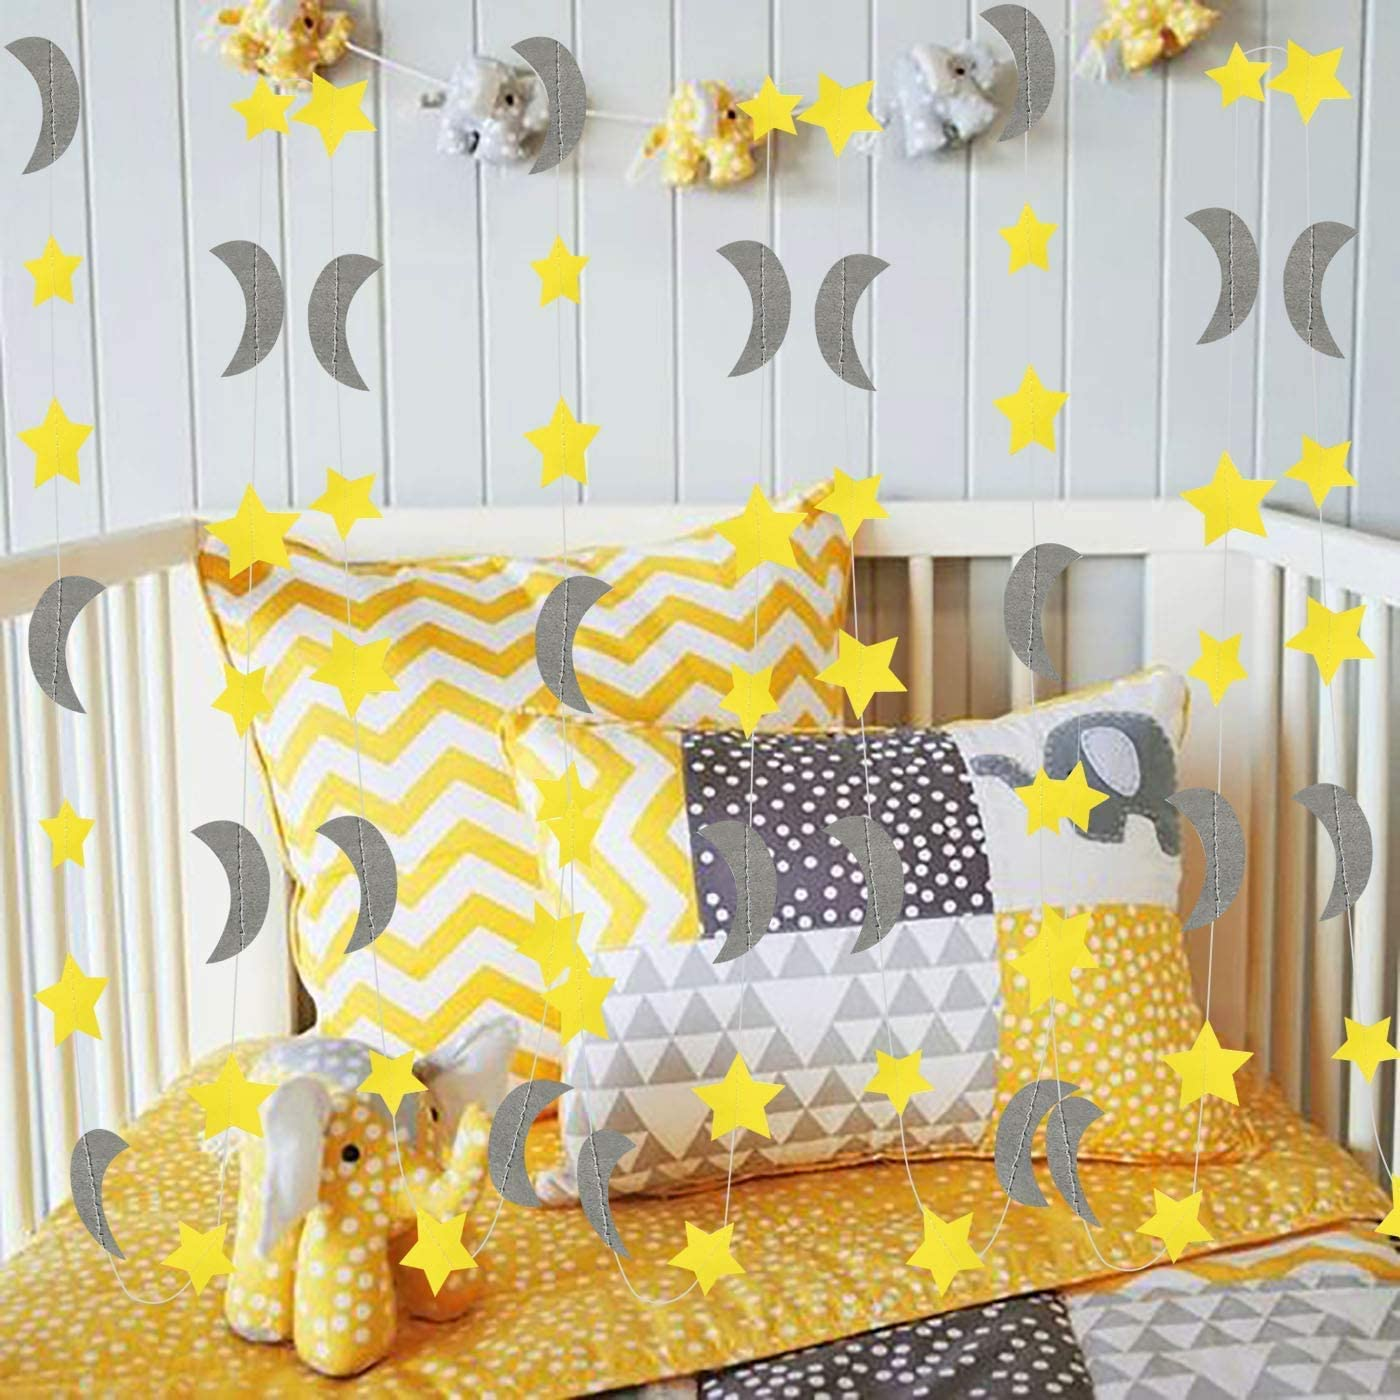 Furuix Yellow Grey Elephant Baby Shower Decorations Moon and Star Garland Decorations for Yellow Birthday Party Decor/Elephant Gray and Yellow Nursery Decorations